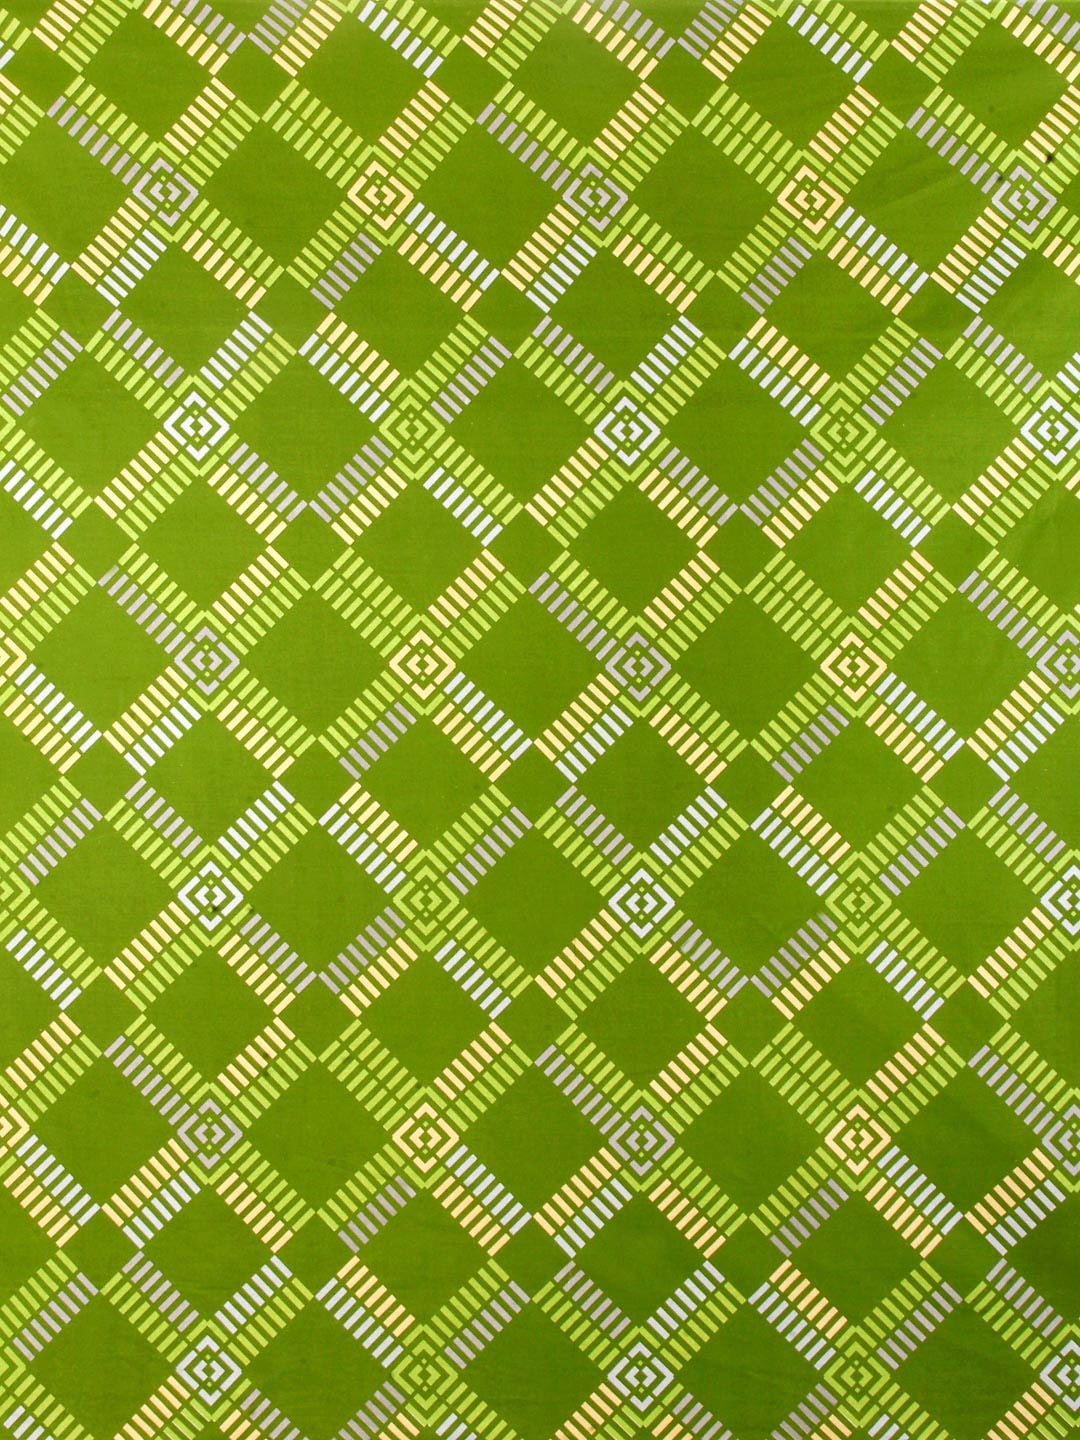 Green bed sheets texture - Green Bed Sheets Texture 42